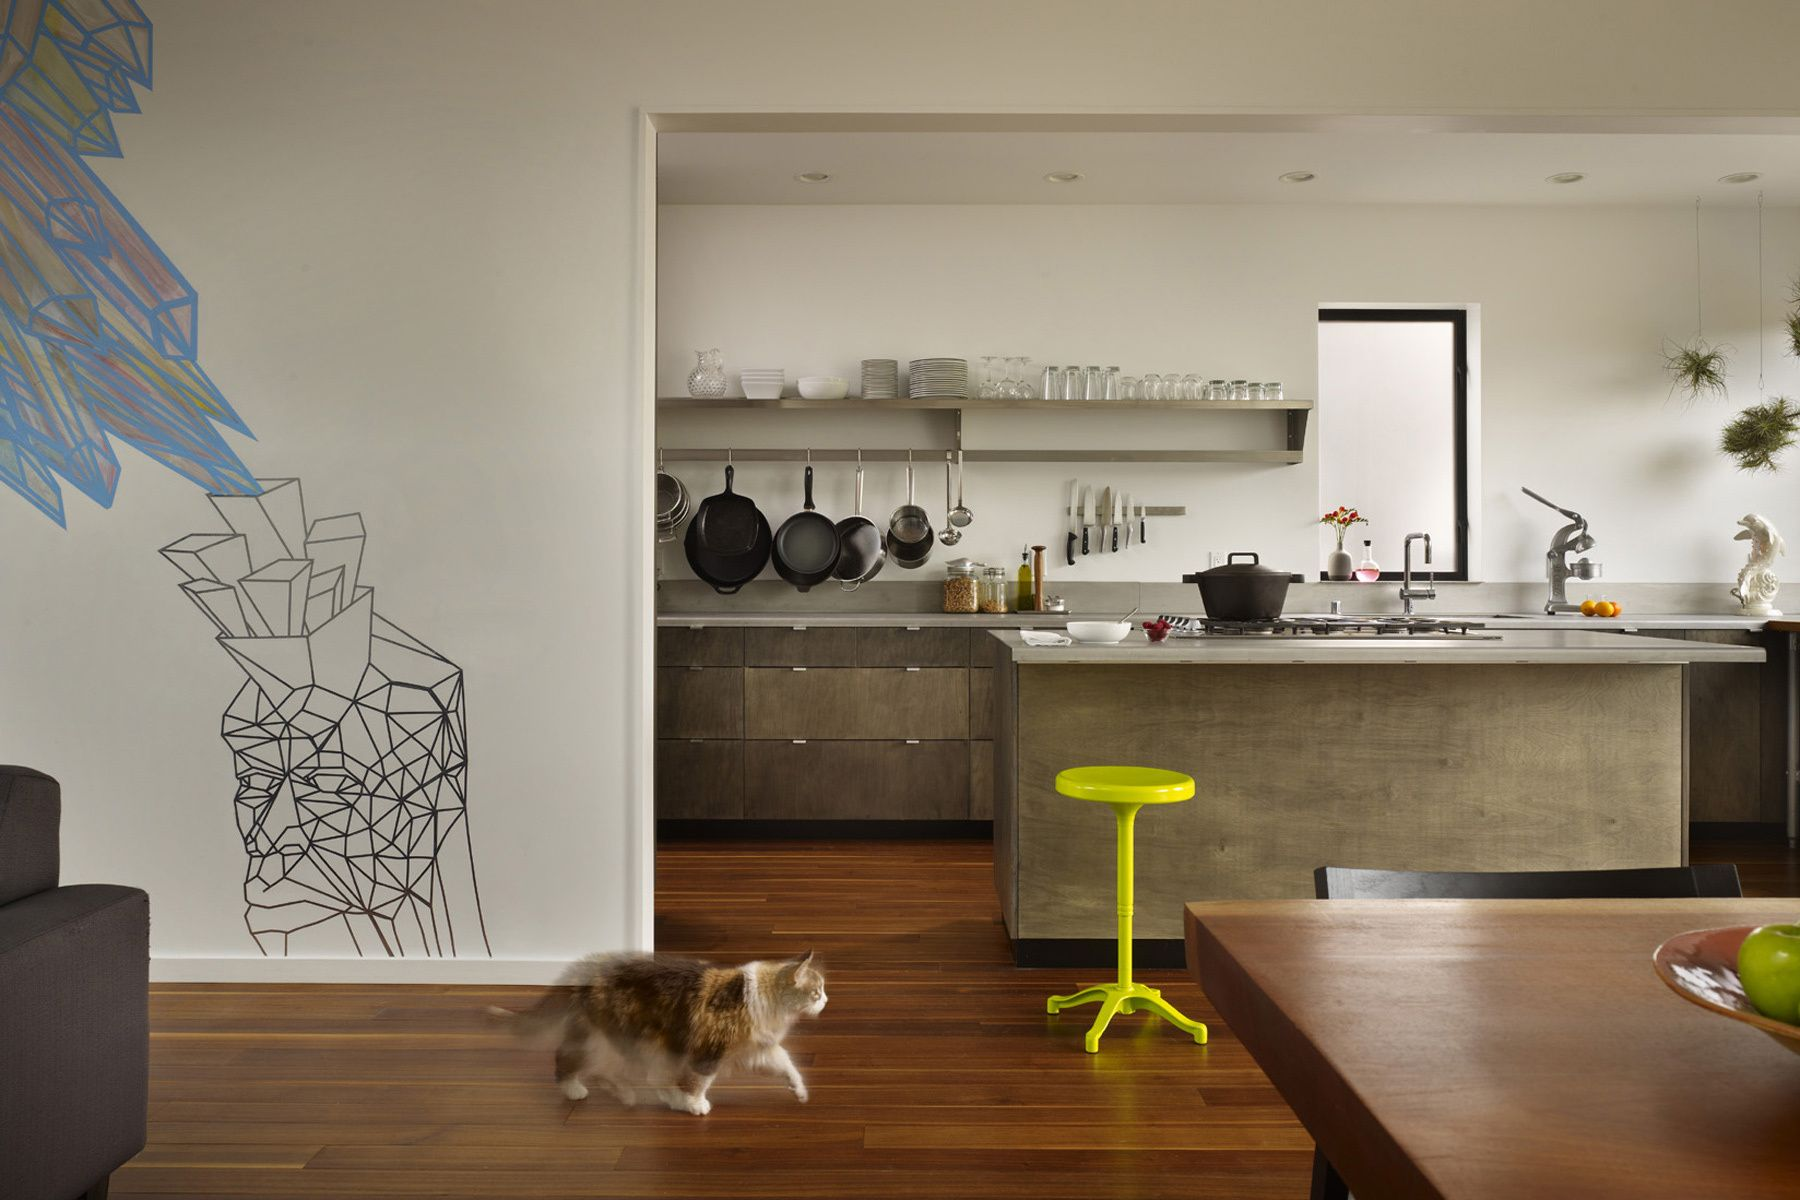 contemporary, kitchen, cat, island, mural